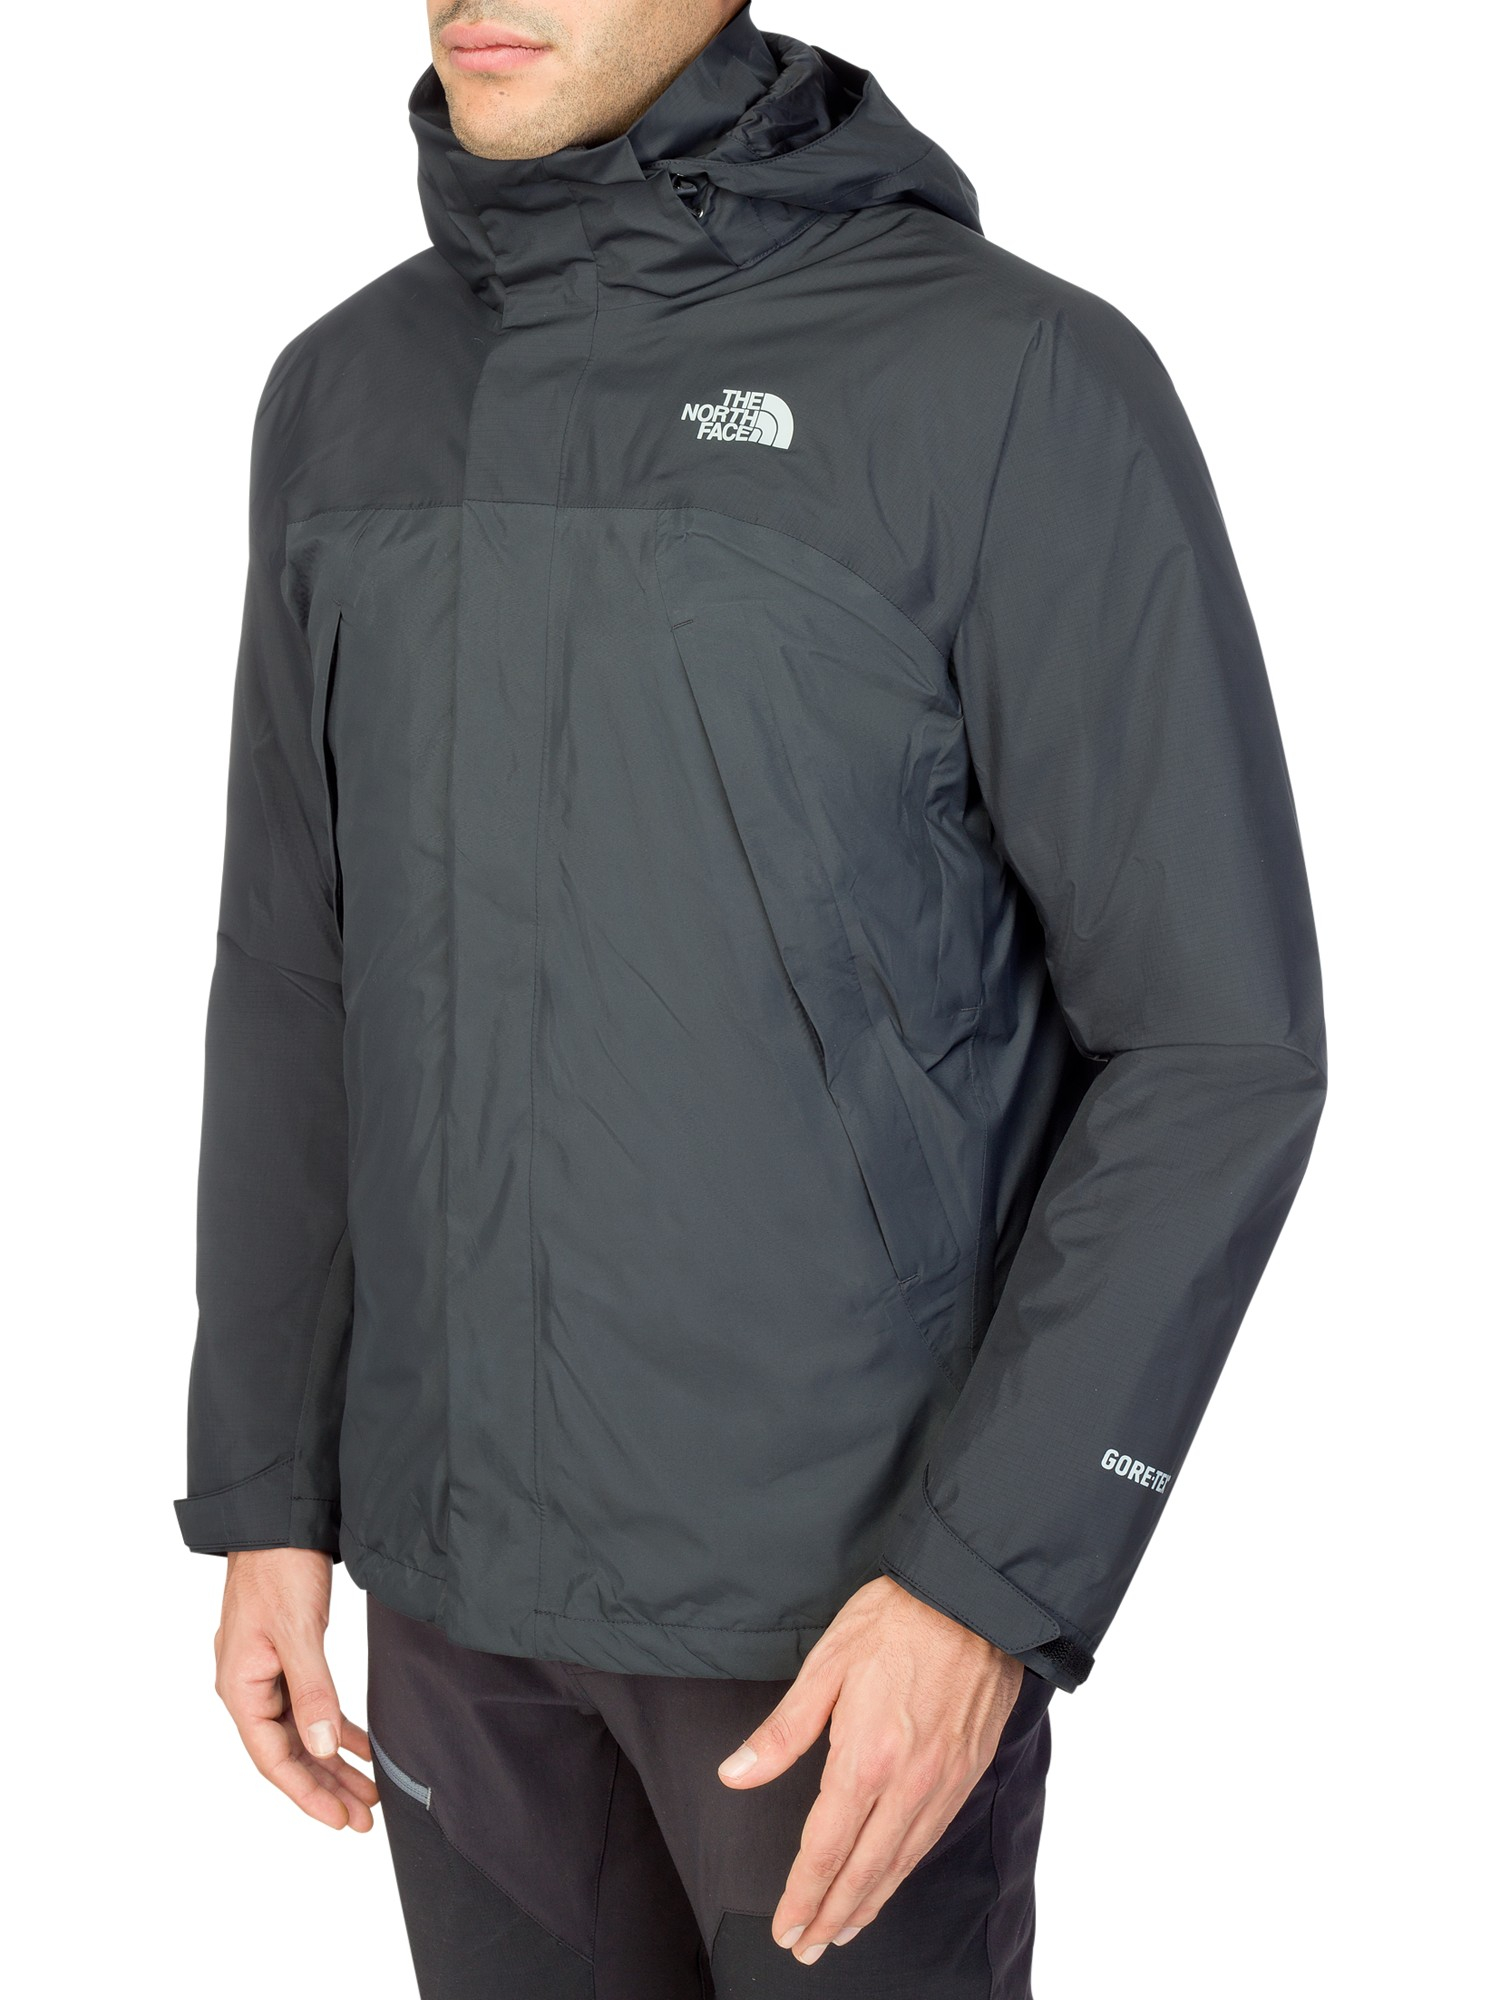 bb0dd2caf5cd The North Face Mountain Light Triclimate 3-In-1 Jacket in Black for ...